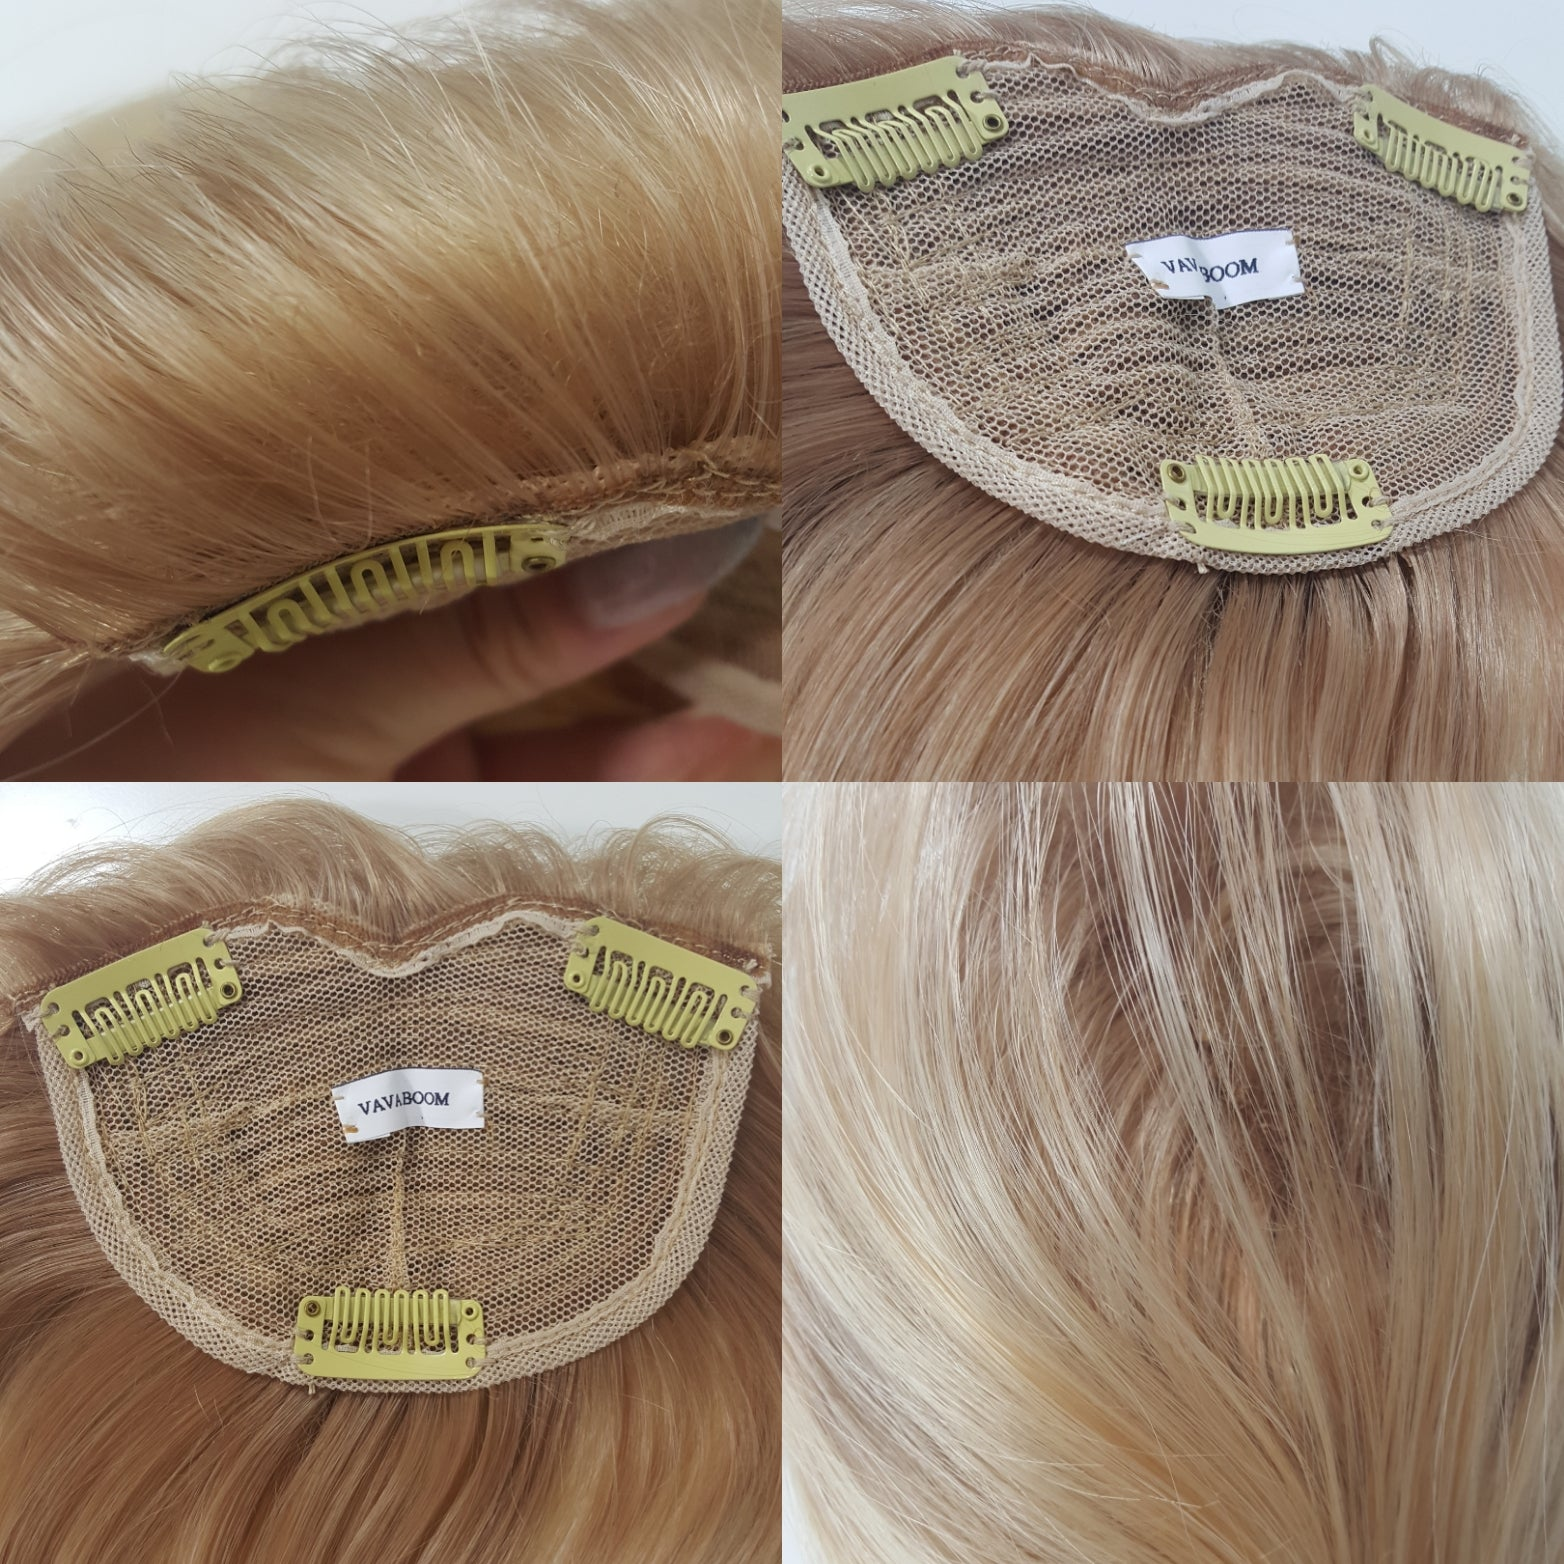 Va Va boom crown volumiser. Hair topper for adding volume to thin hair and disguising hair loss in women